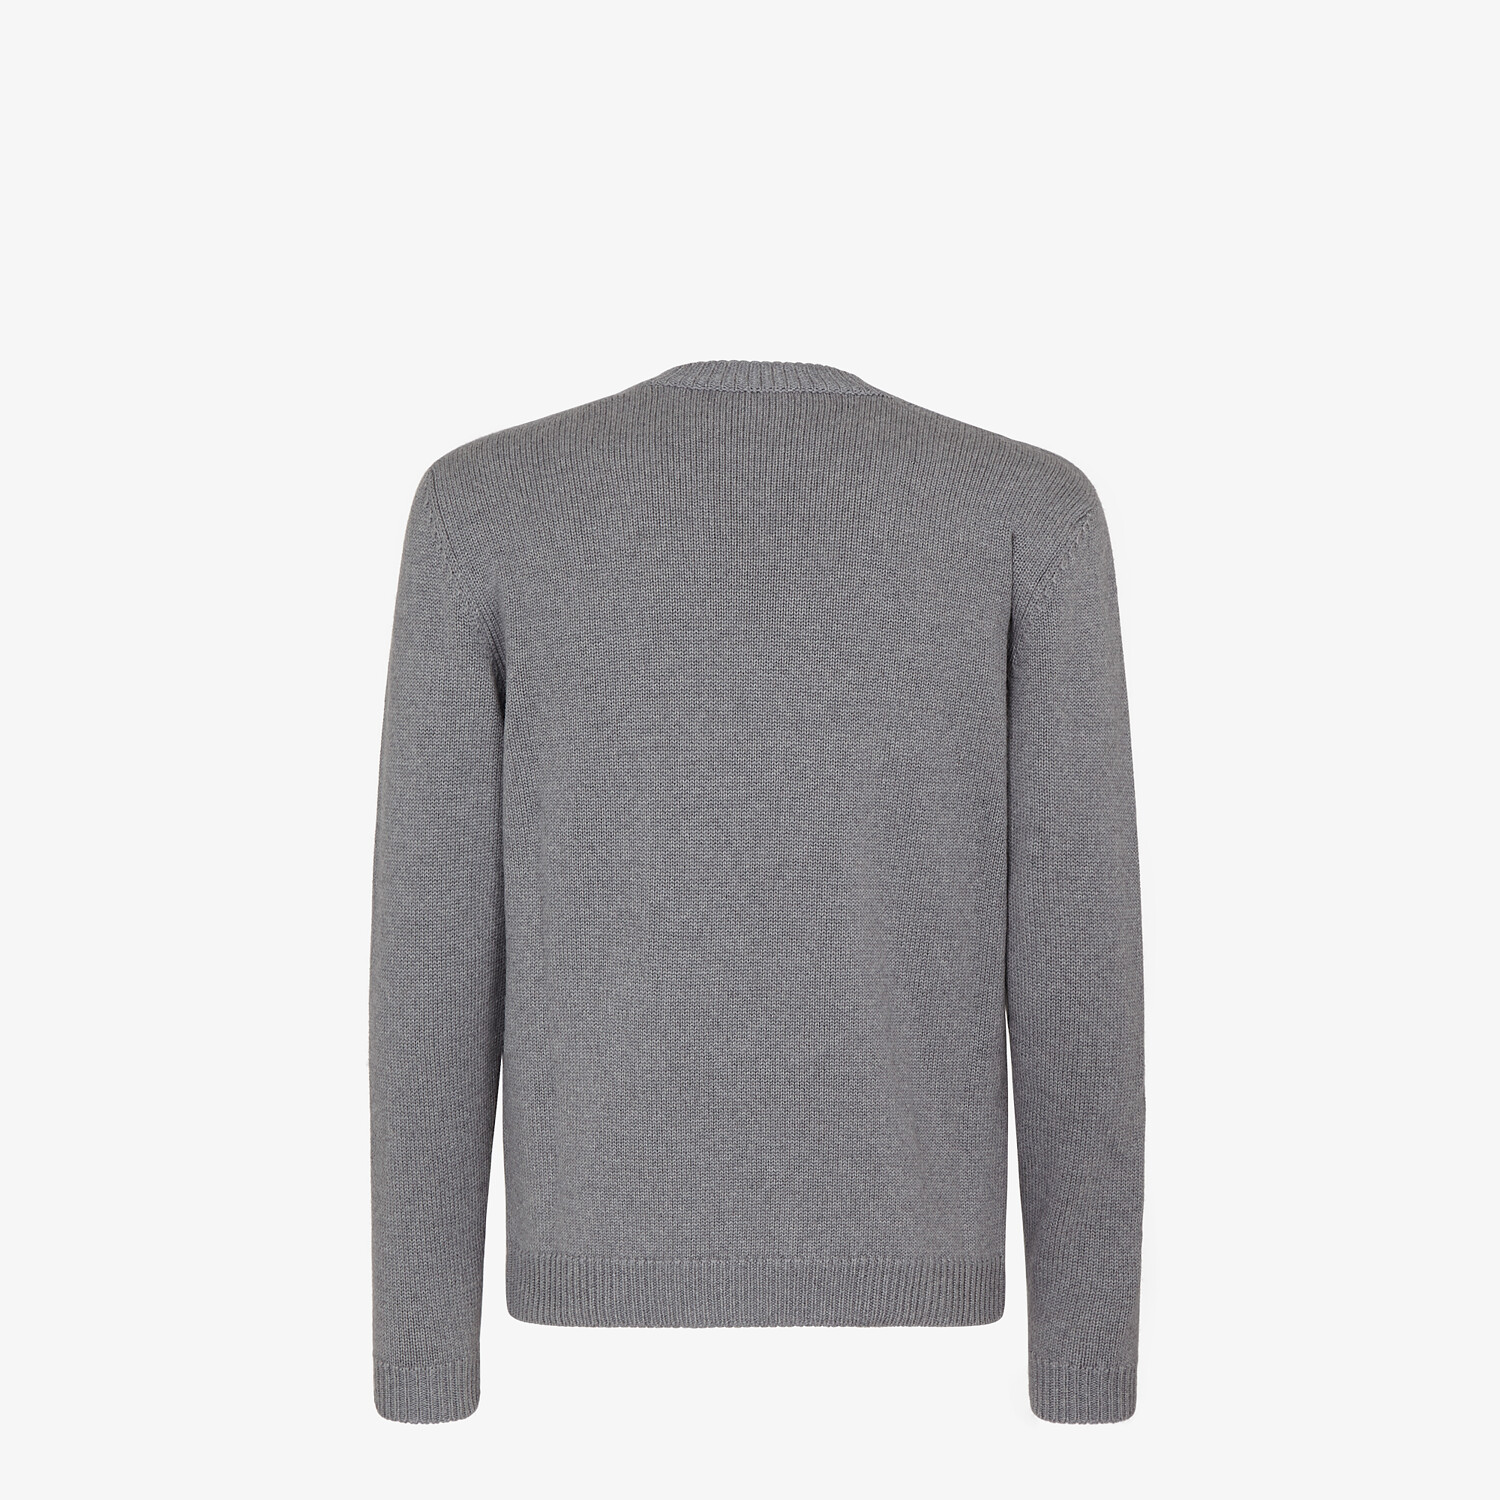 FENDI SWEATER - Gray wool sweater - view 2 detail